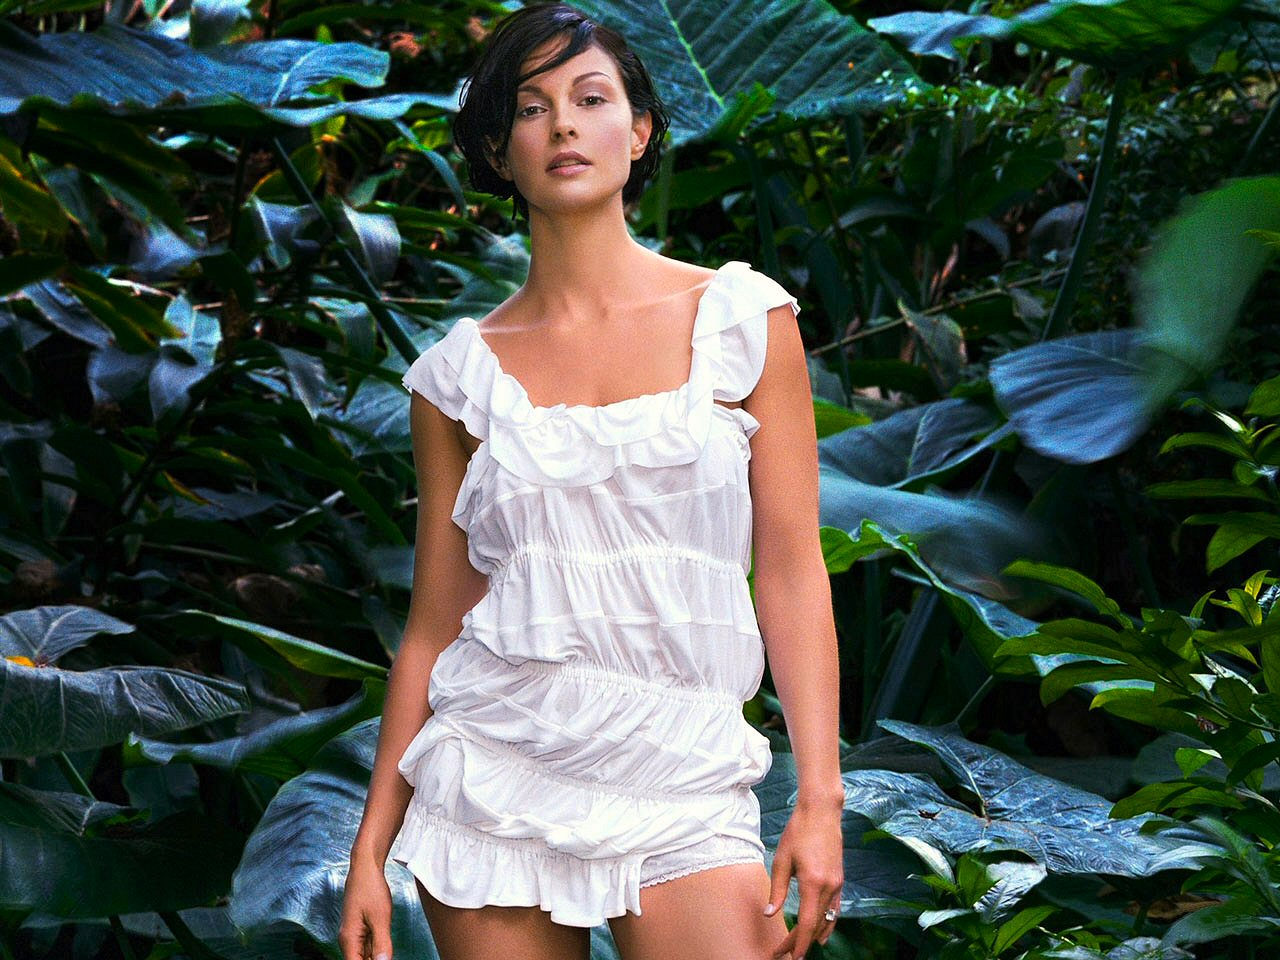 Spicy Actress Hot Gallery: Ashley Judd